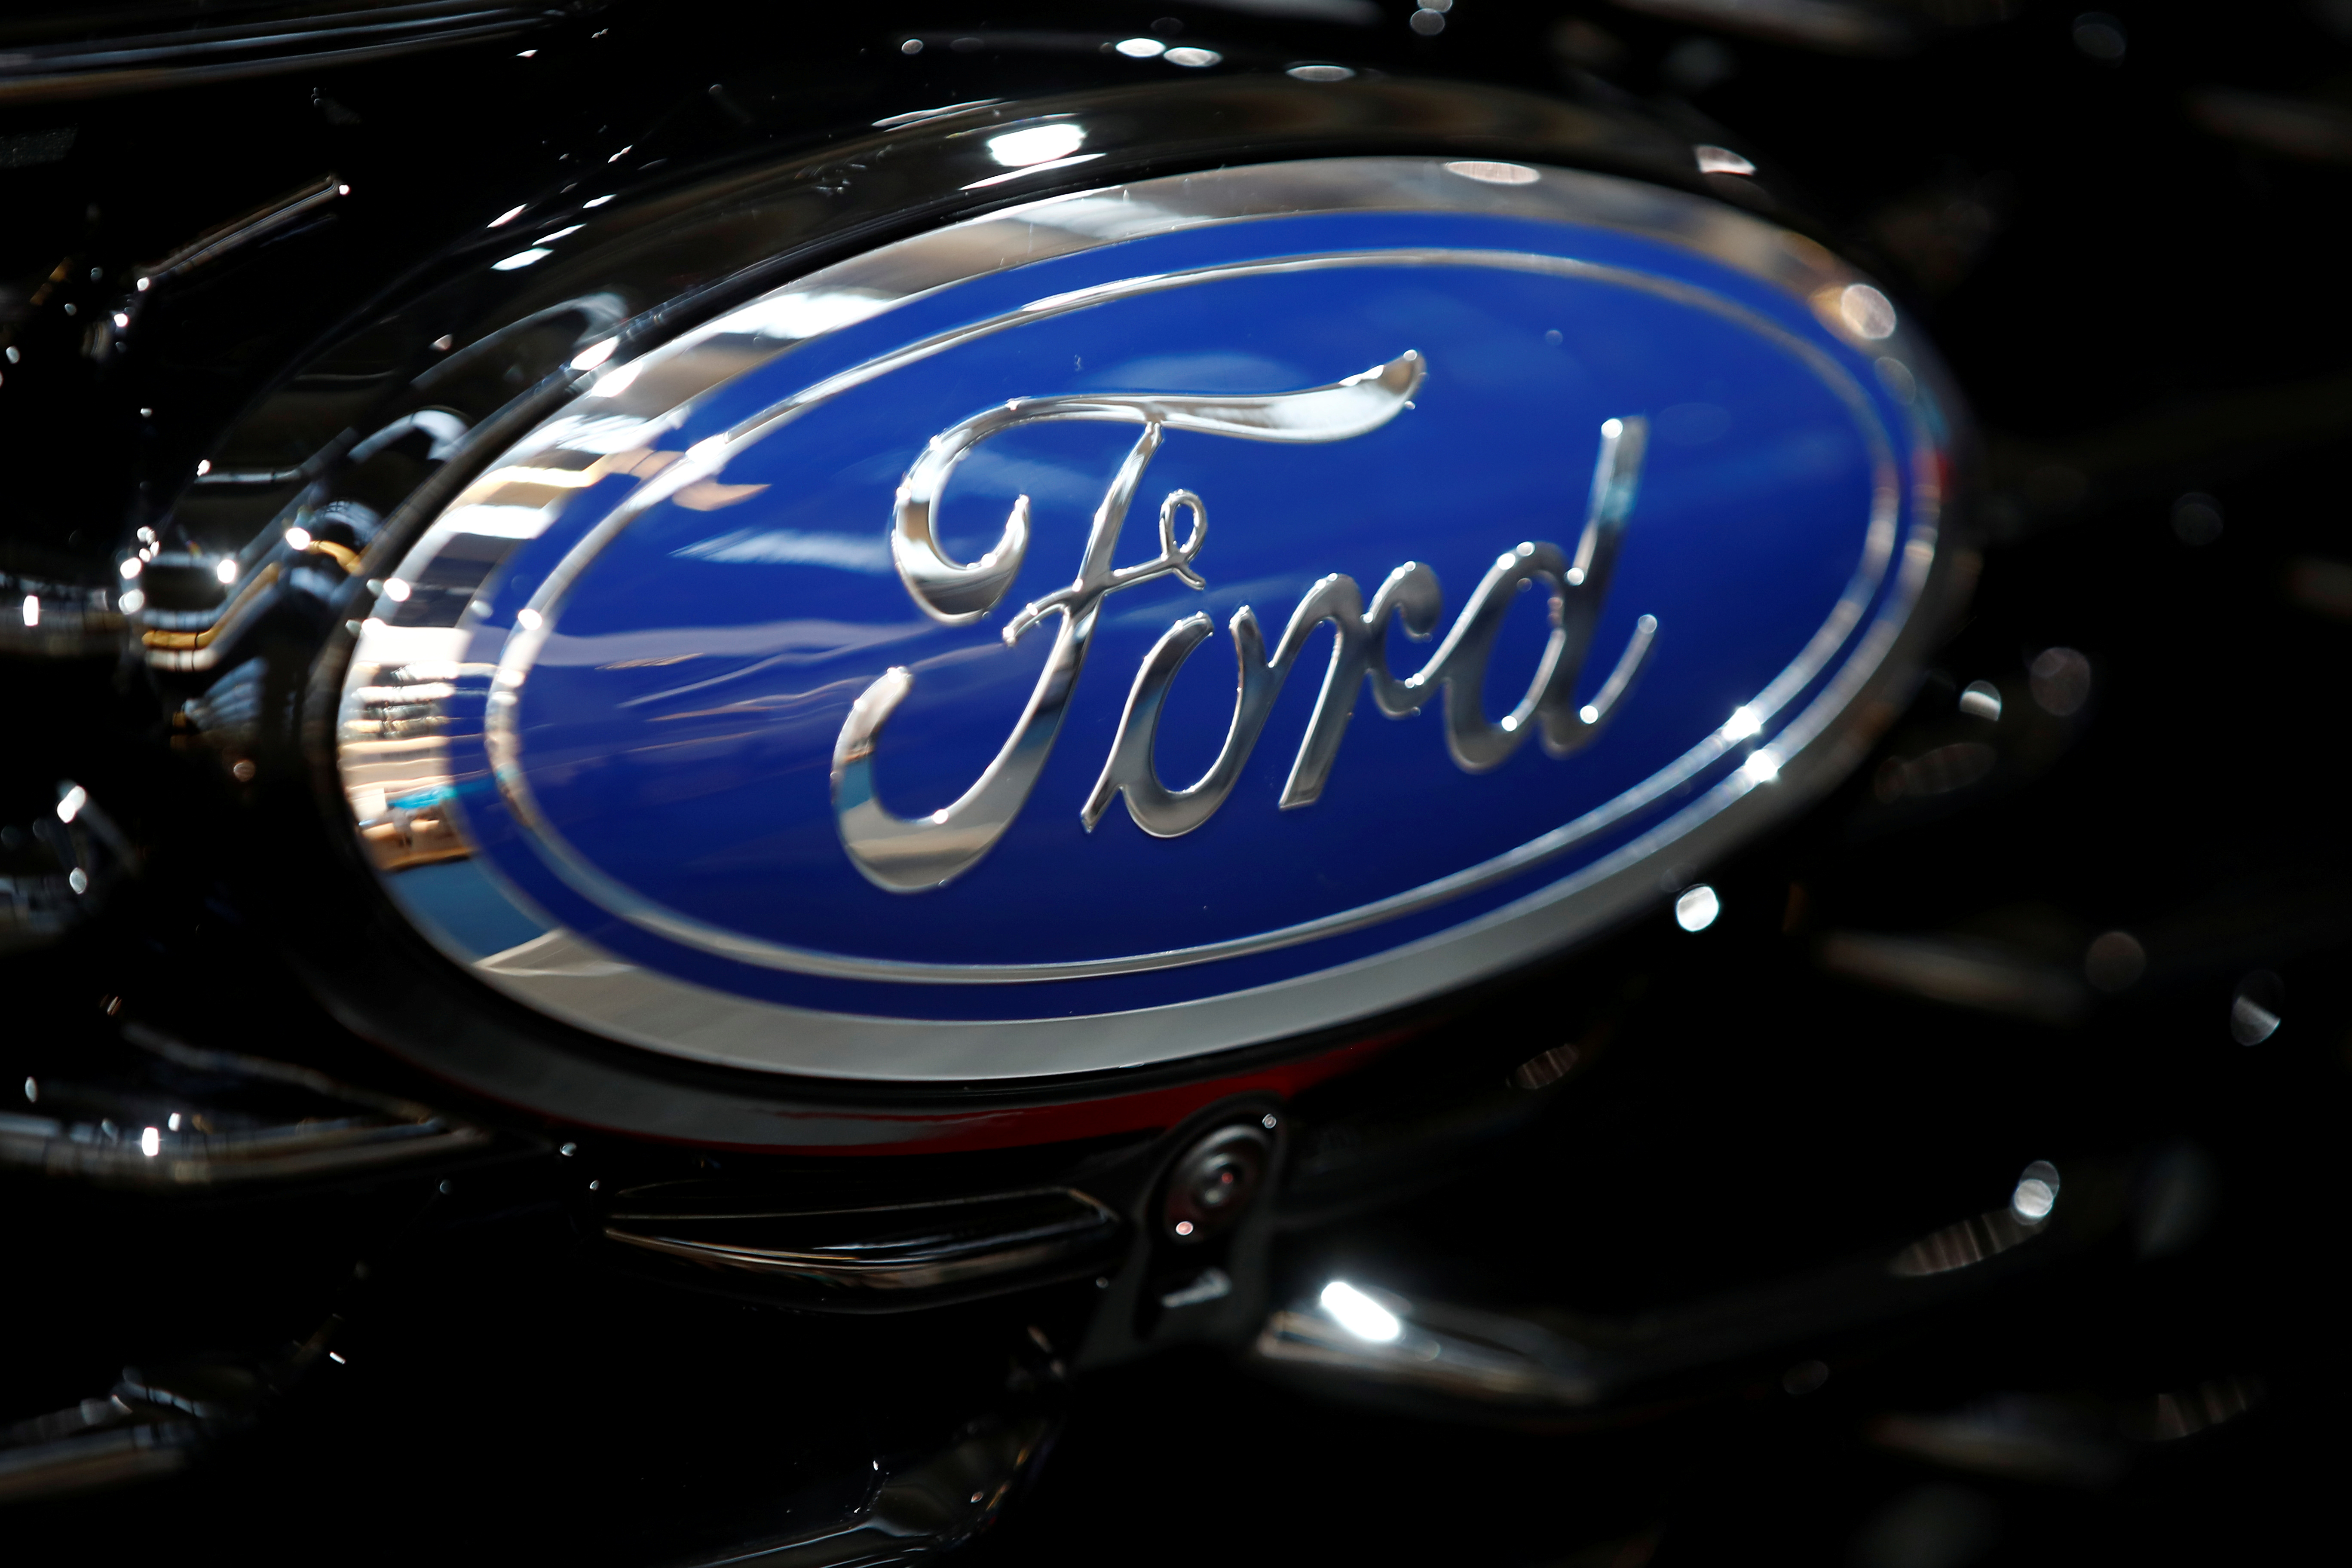 Ford logo is pictured at the 2019 Frankfurt Motor Show (IAA) in Frankfurt, Germany. REUTERS/Wolfgang Rattay/File Photo